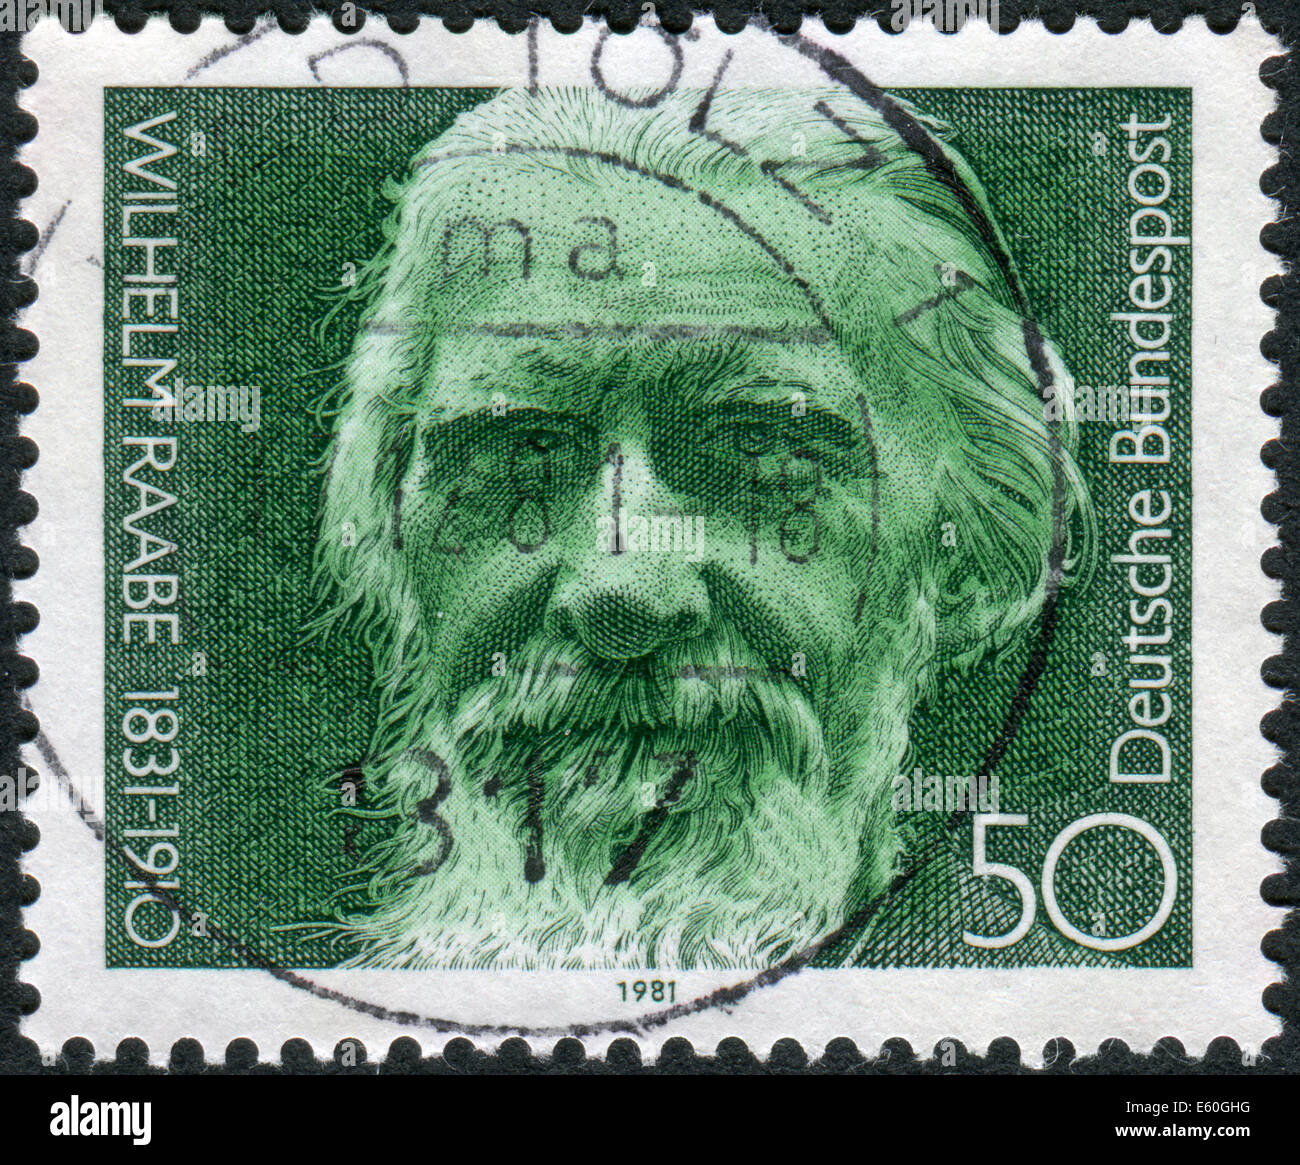 Postage stamp printed in Germany, shows the poet Wilhelm Raabe, circa 1981 Stock Photo